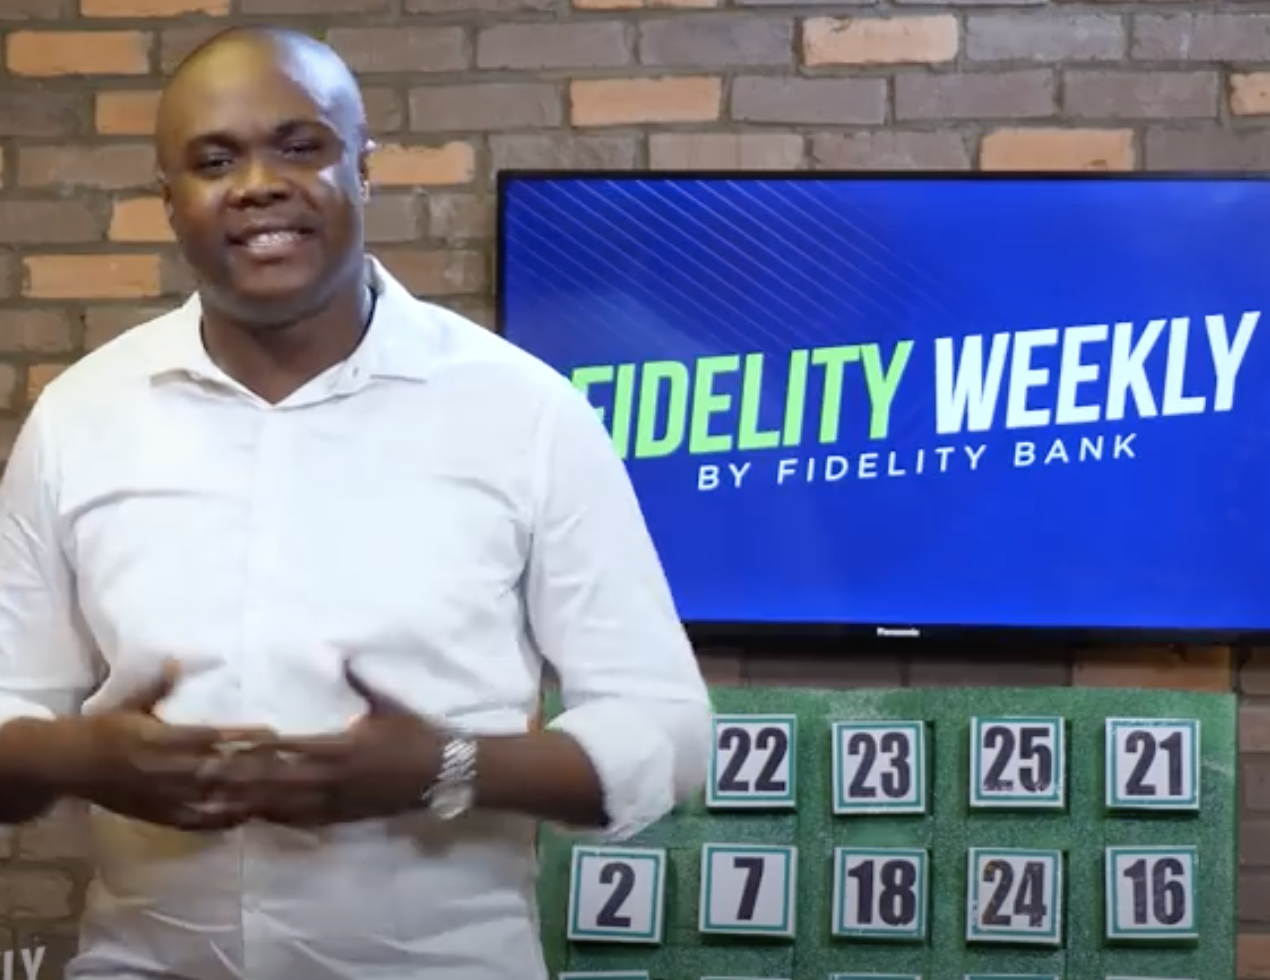 Fidelity Weekly Episode 4-Gender Games